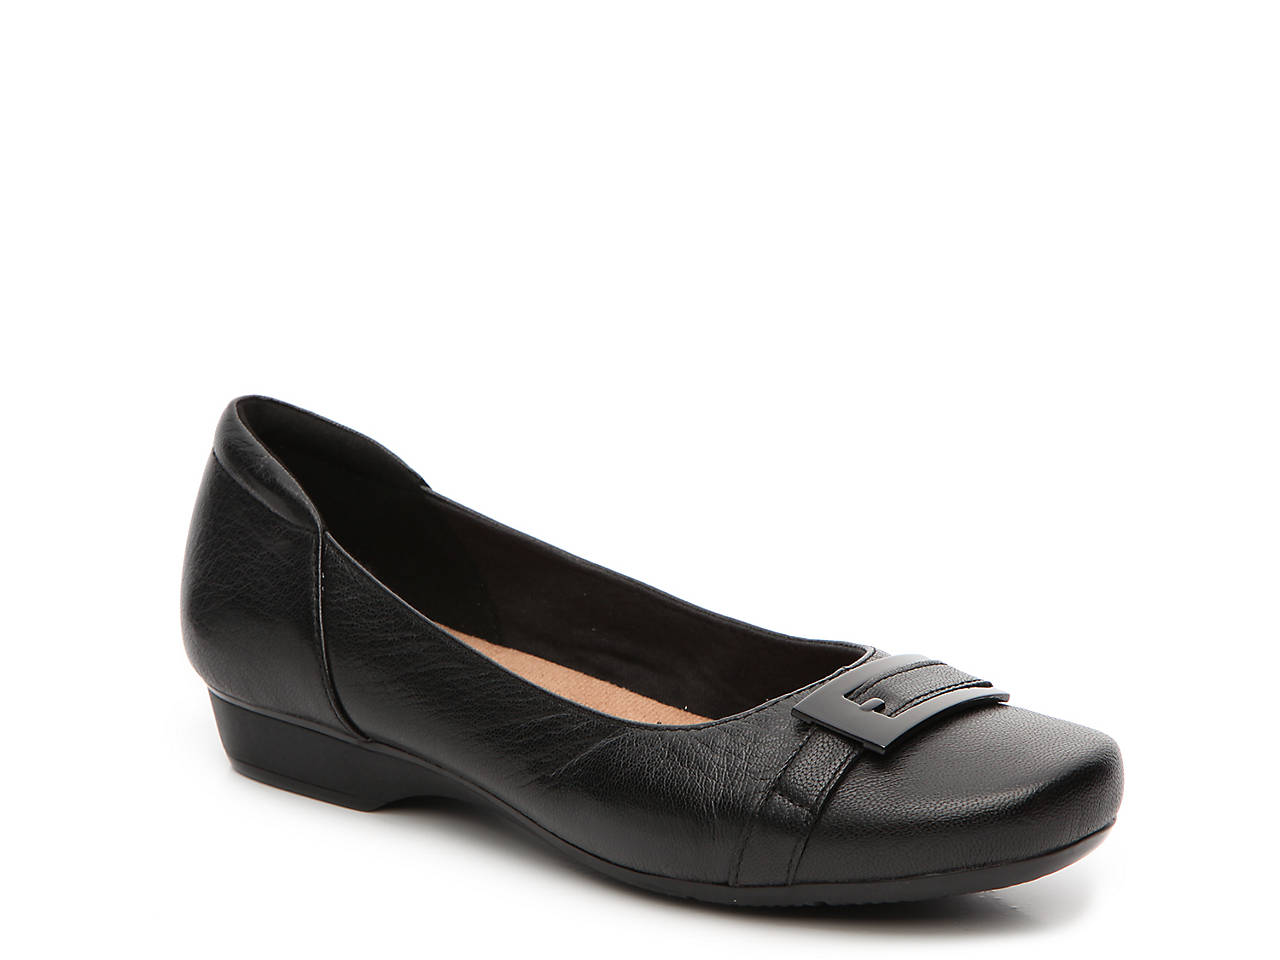 0baa9e5381736 Shoes Clarks Womens Blanche West Flat